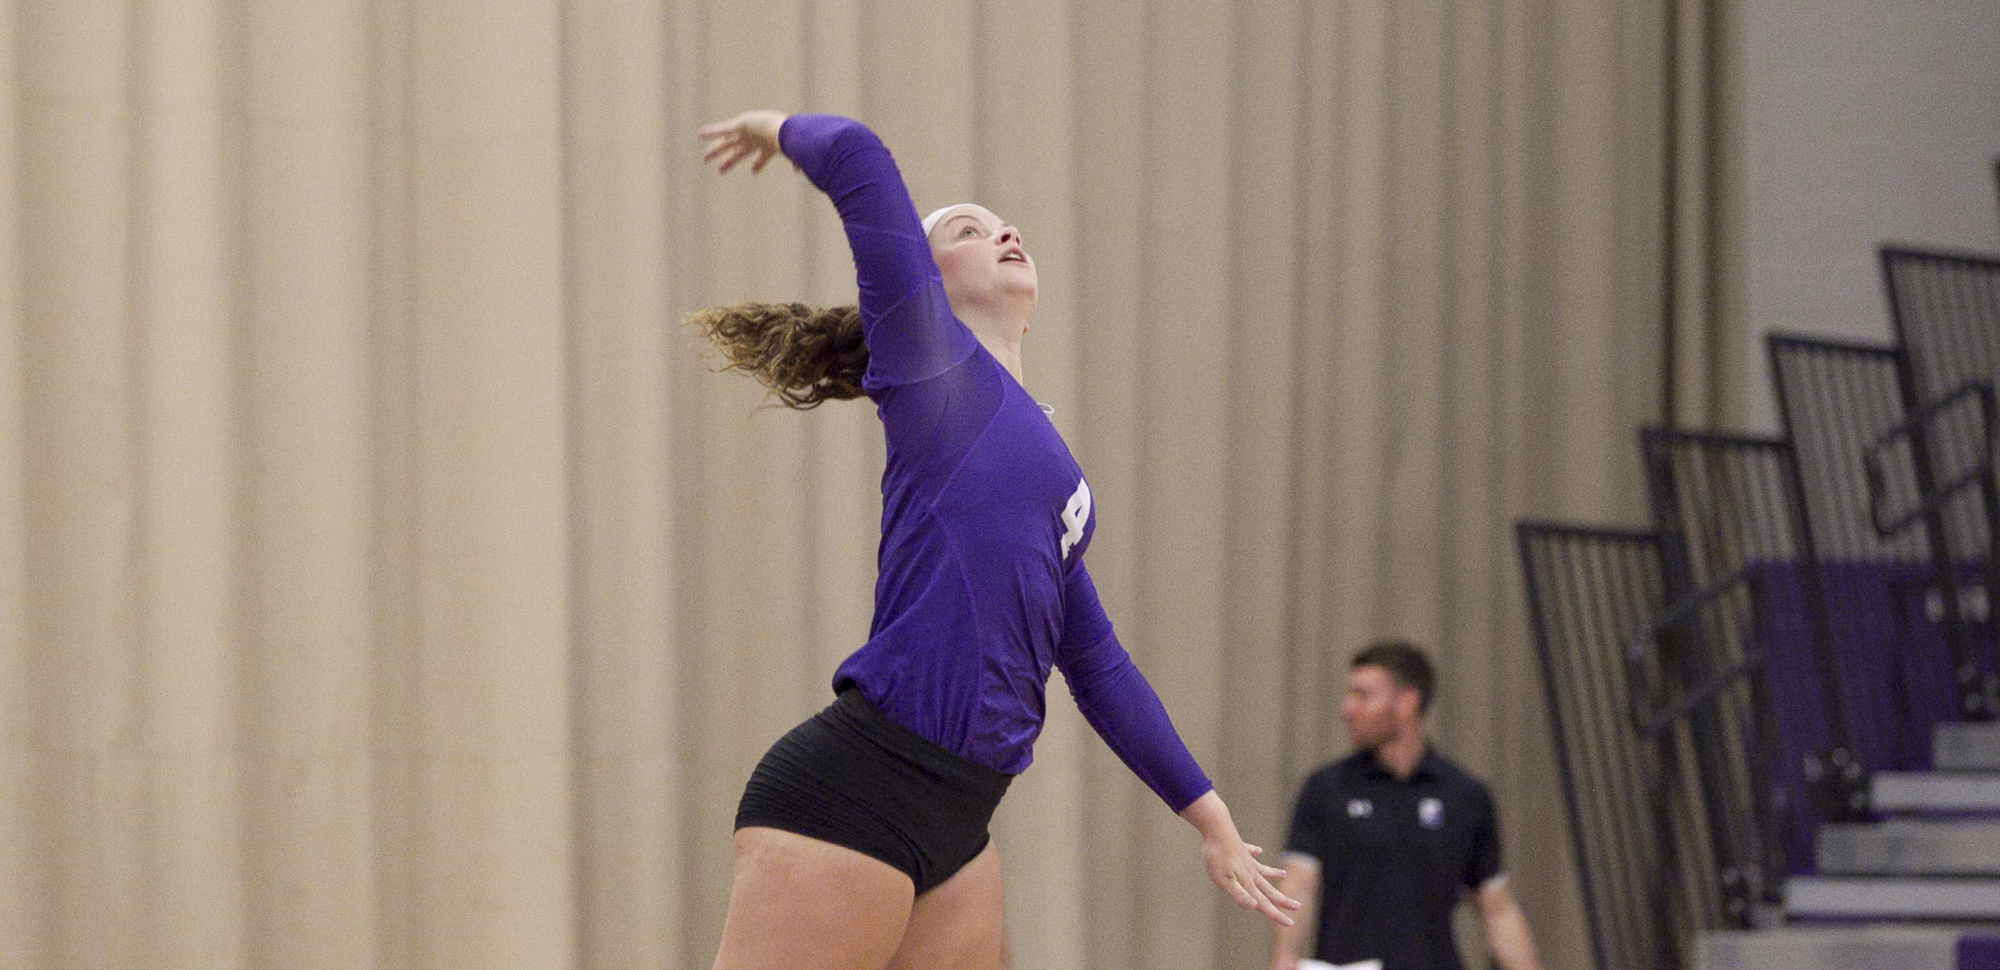 Kristin Bush totaled 26 digs on Saturday as Scranton split a pair of five-set match at the Vassar Invitational.